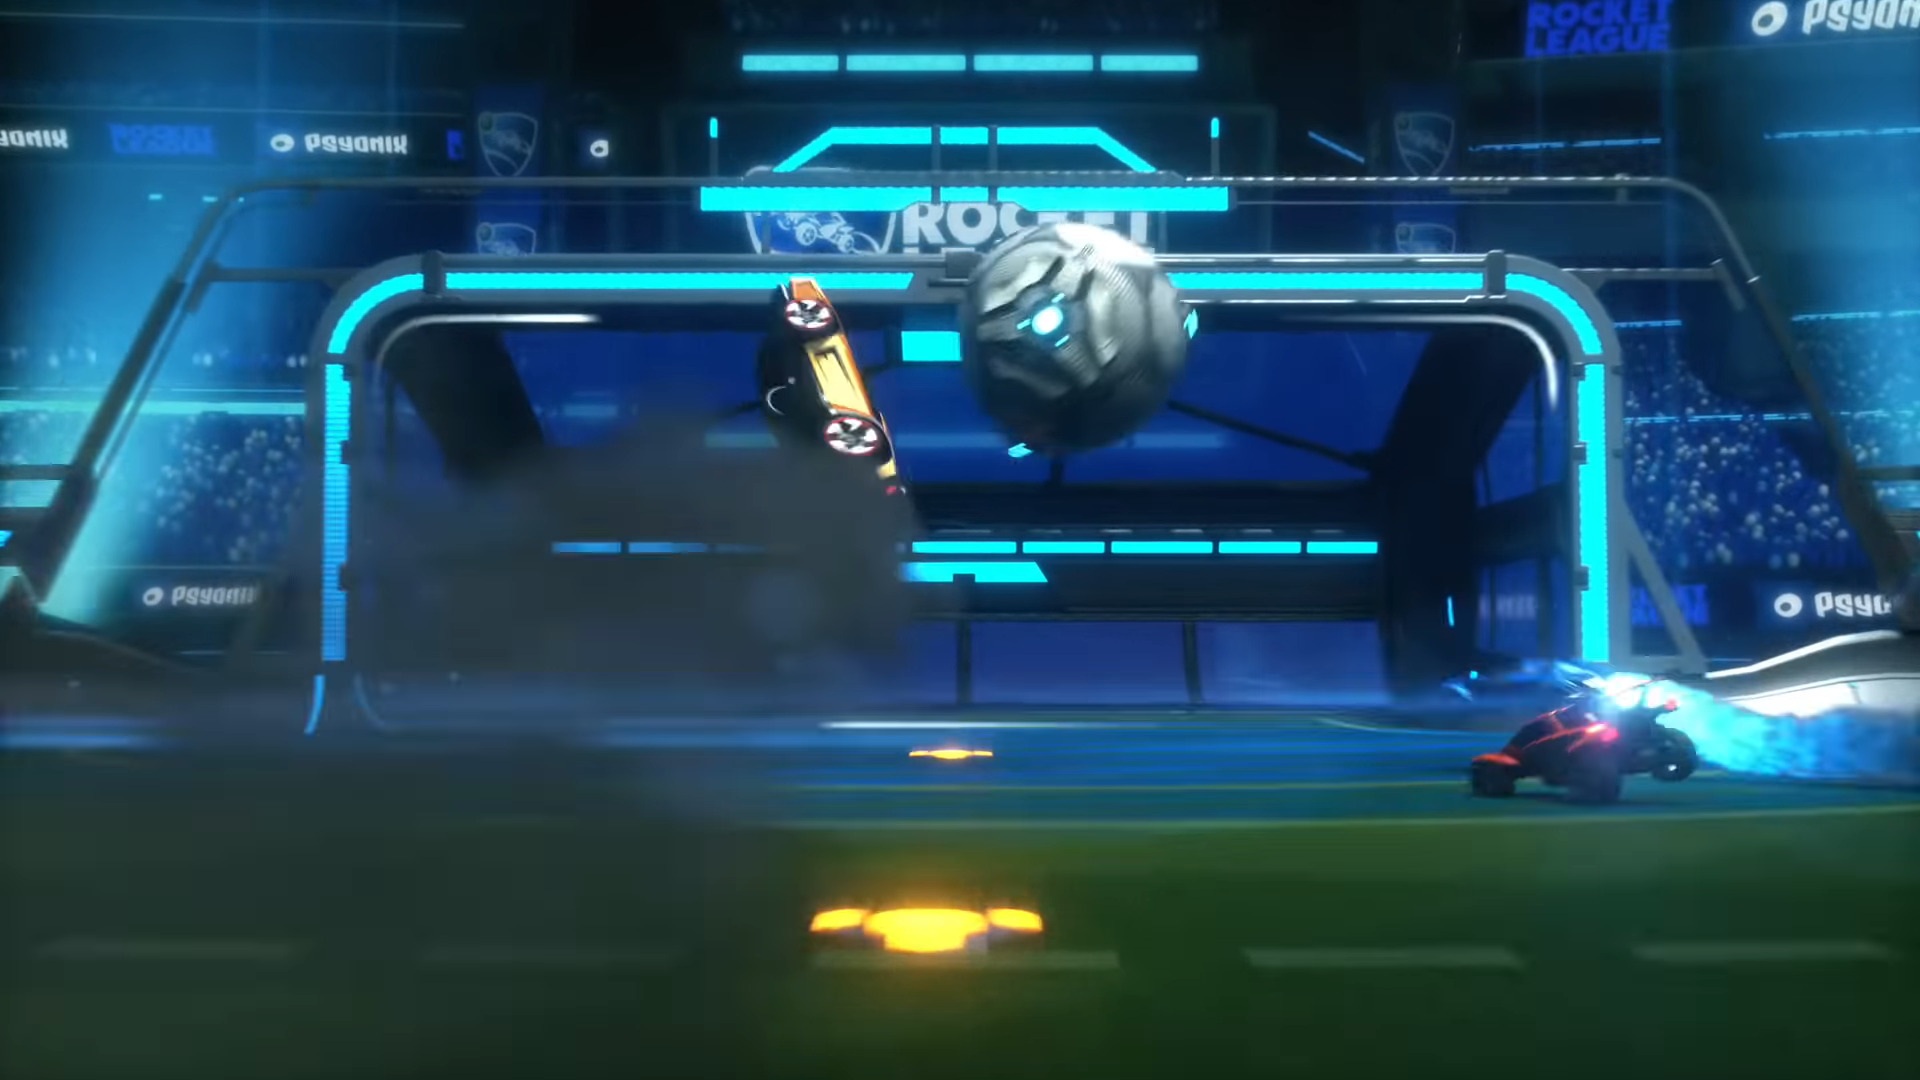 Dignitas Completes Rocket League Lineup With 17-year Old Pro ApparentlyJack